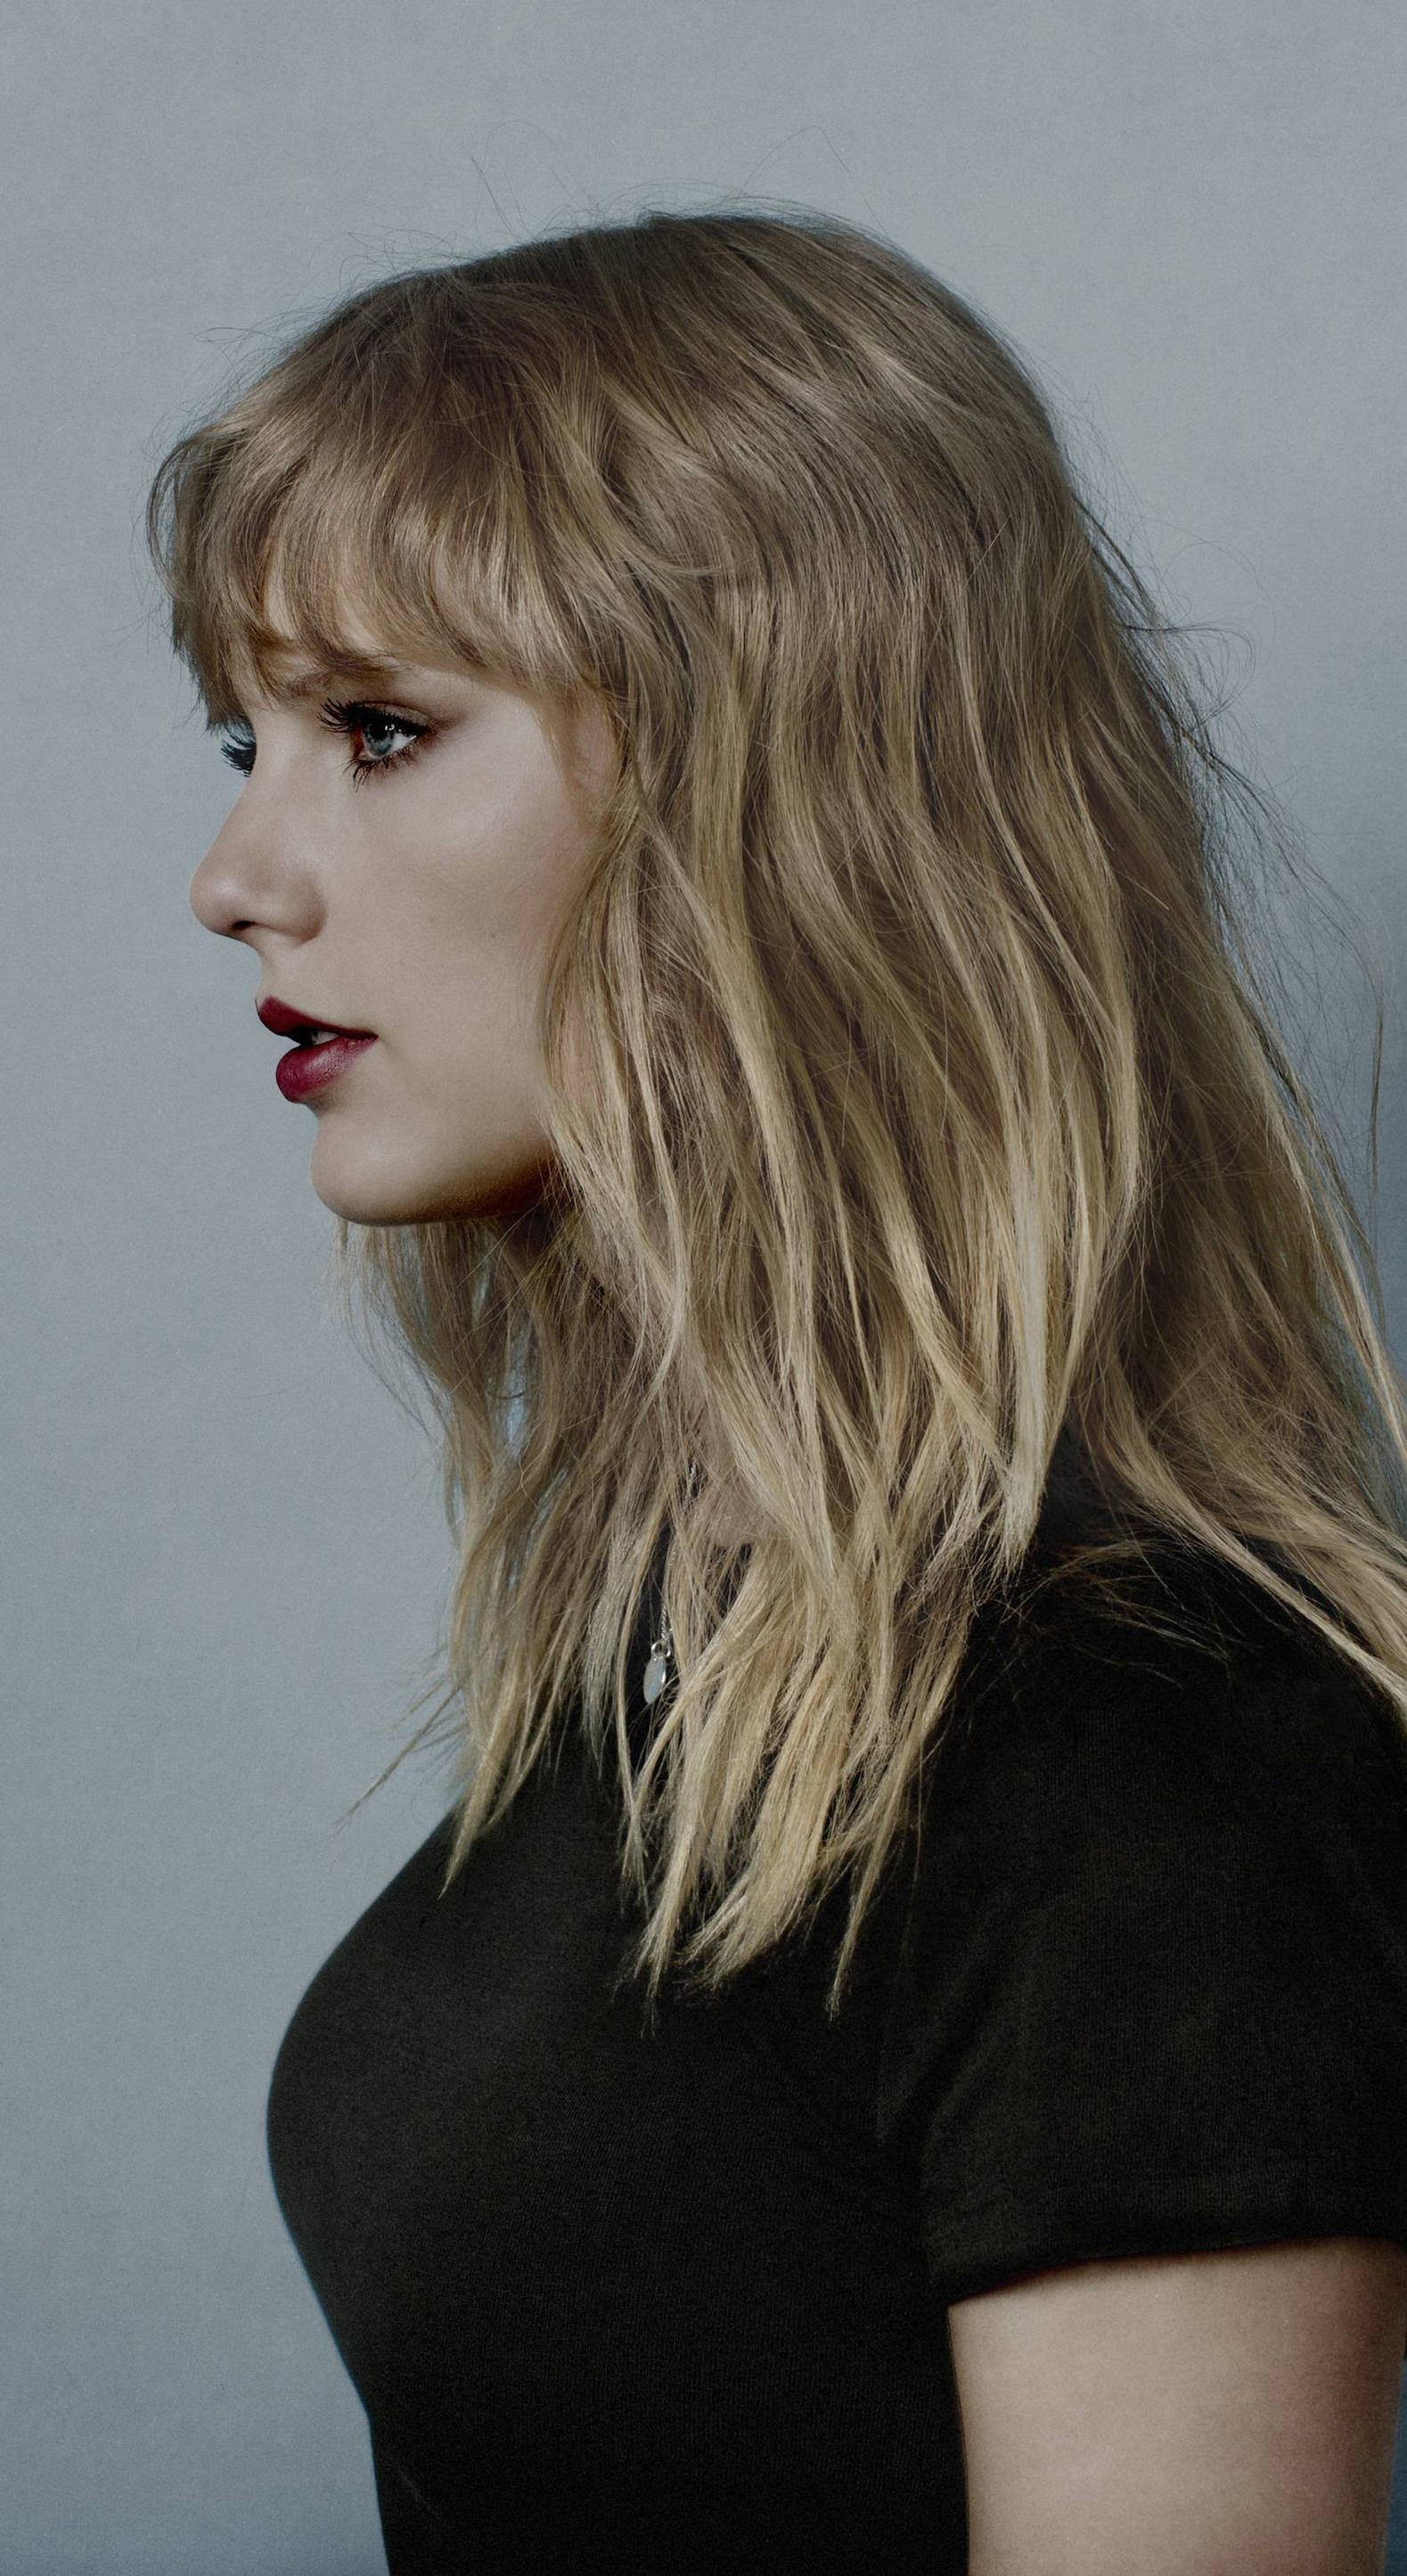 Taylor swift me wallpapers wallpaper cave - Taylor swift wallpaper iphone ...